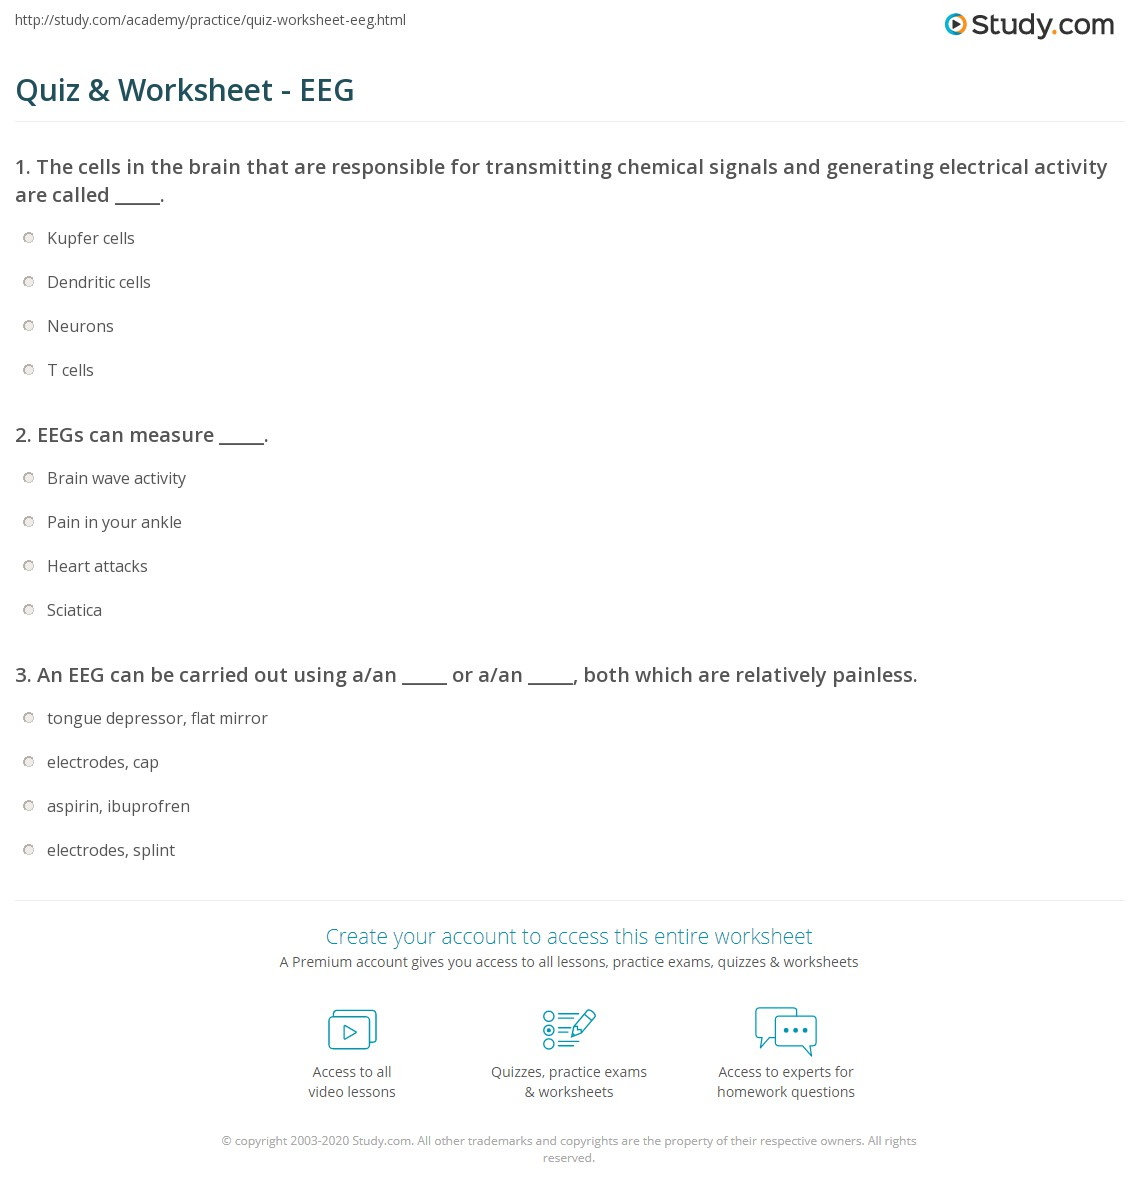 Quiz & Worksheet - EEG | Study.com